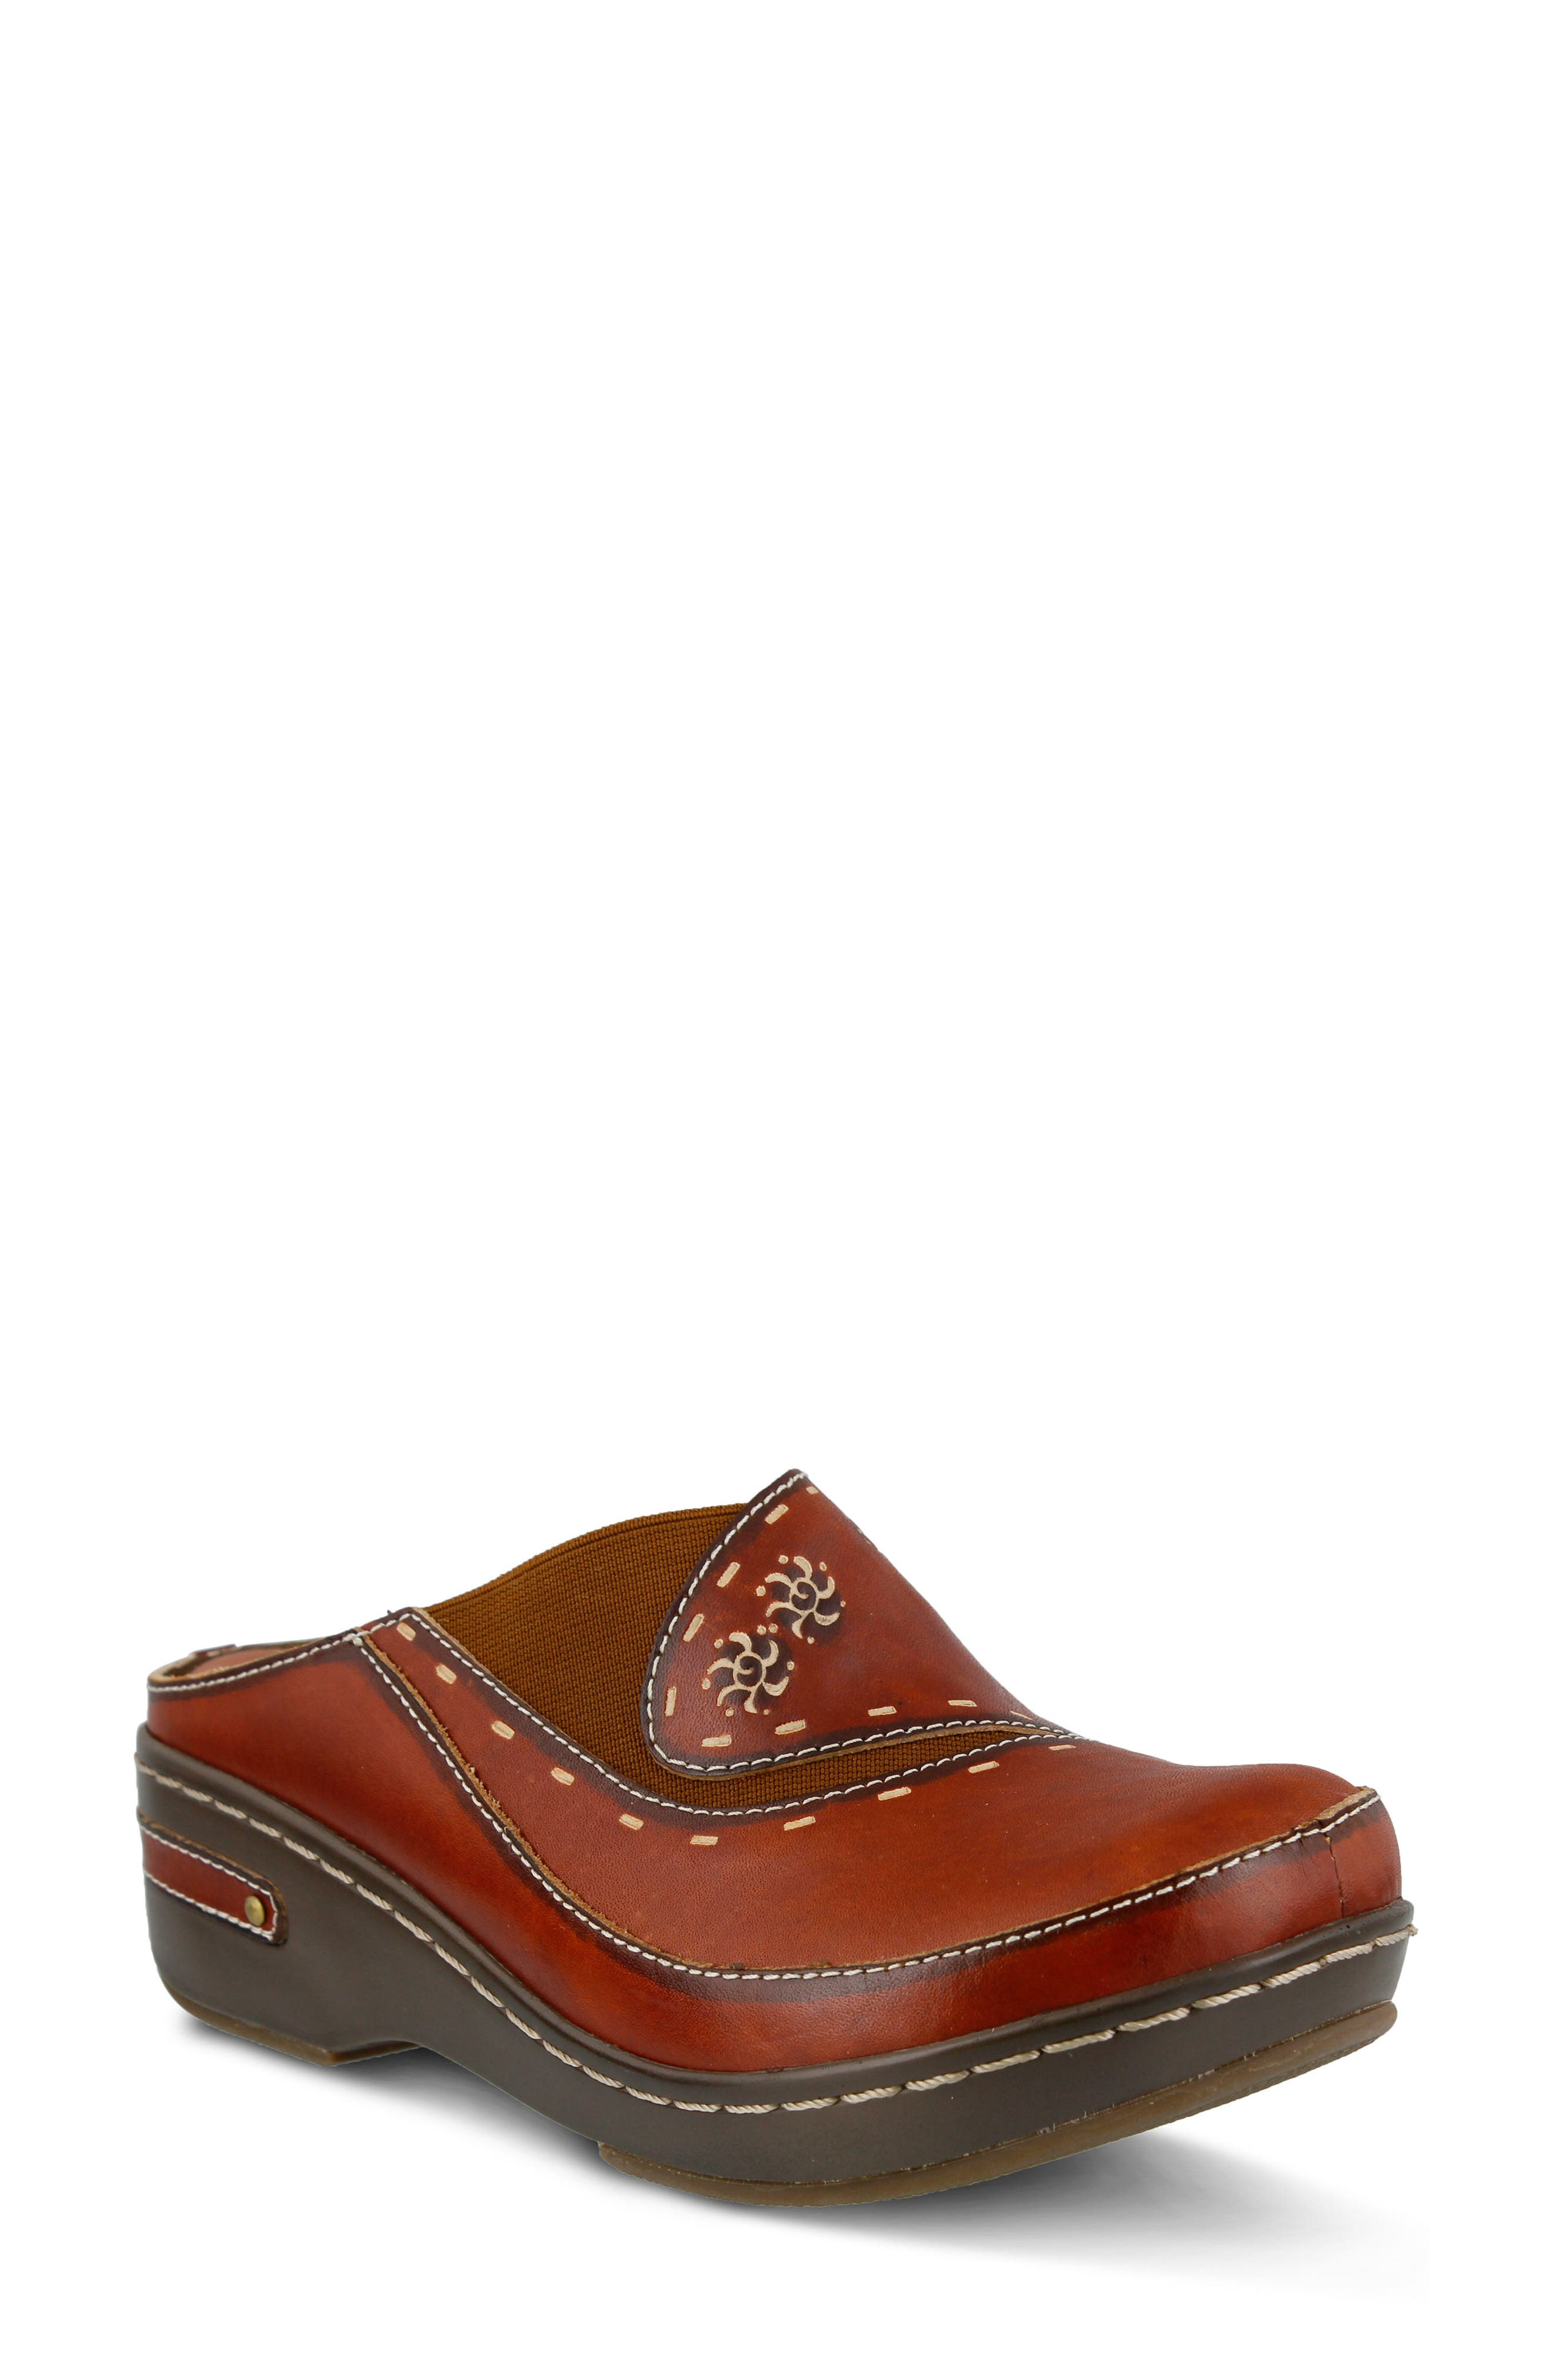 L'Artiste Chino Clog,                             Main thumbnail 1, color,                             Camel Leather